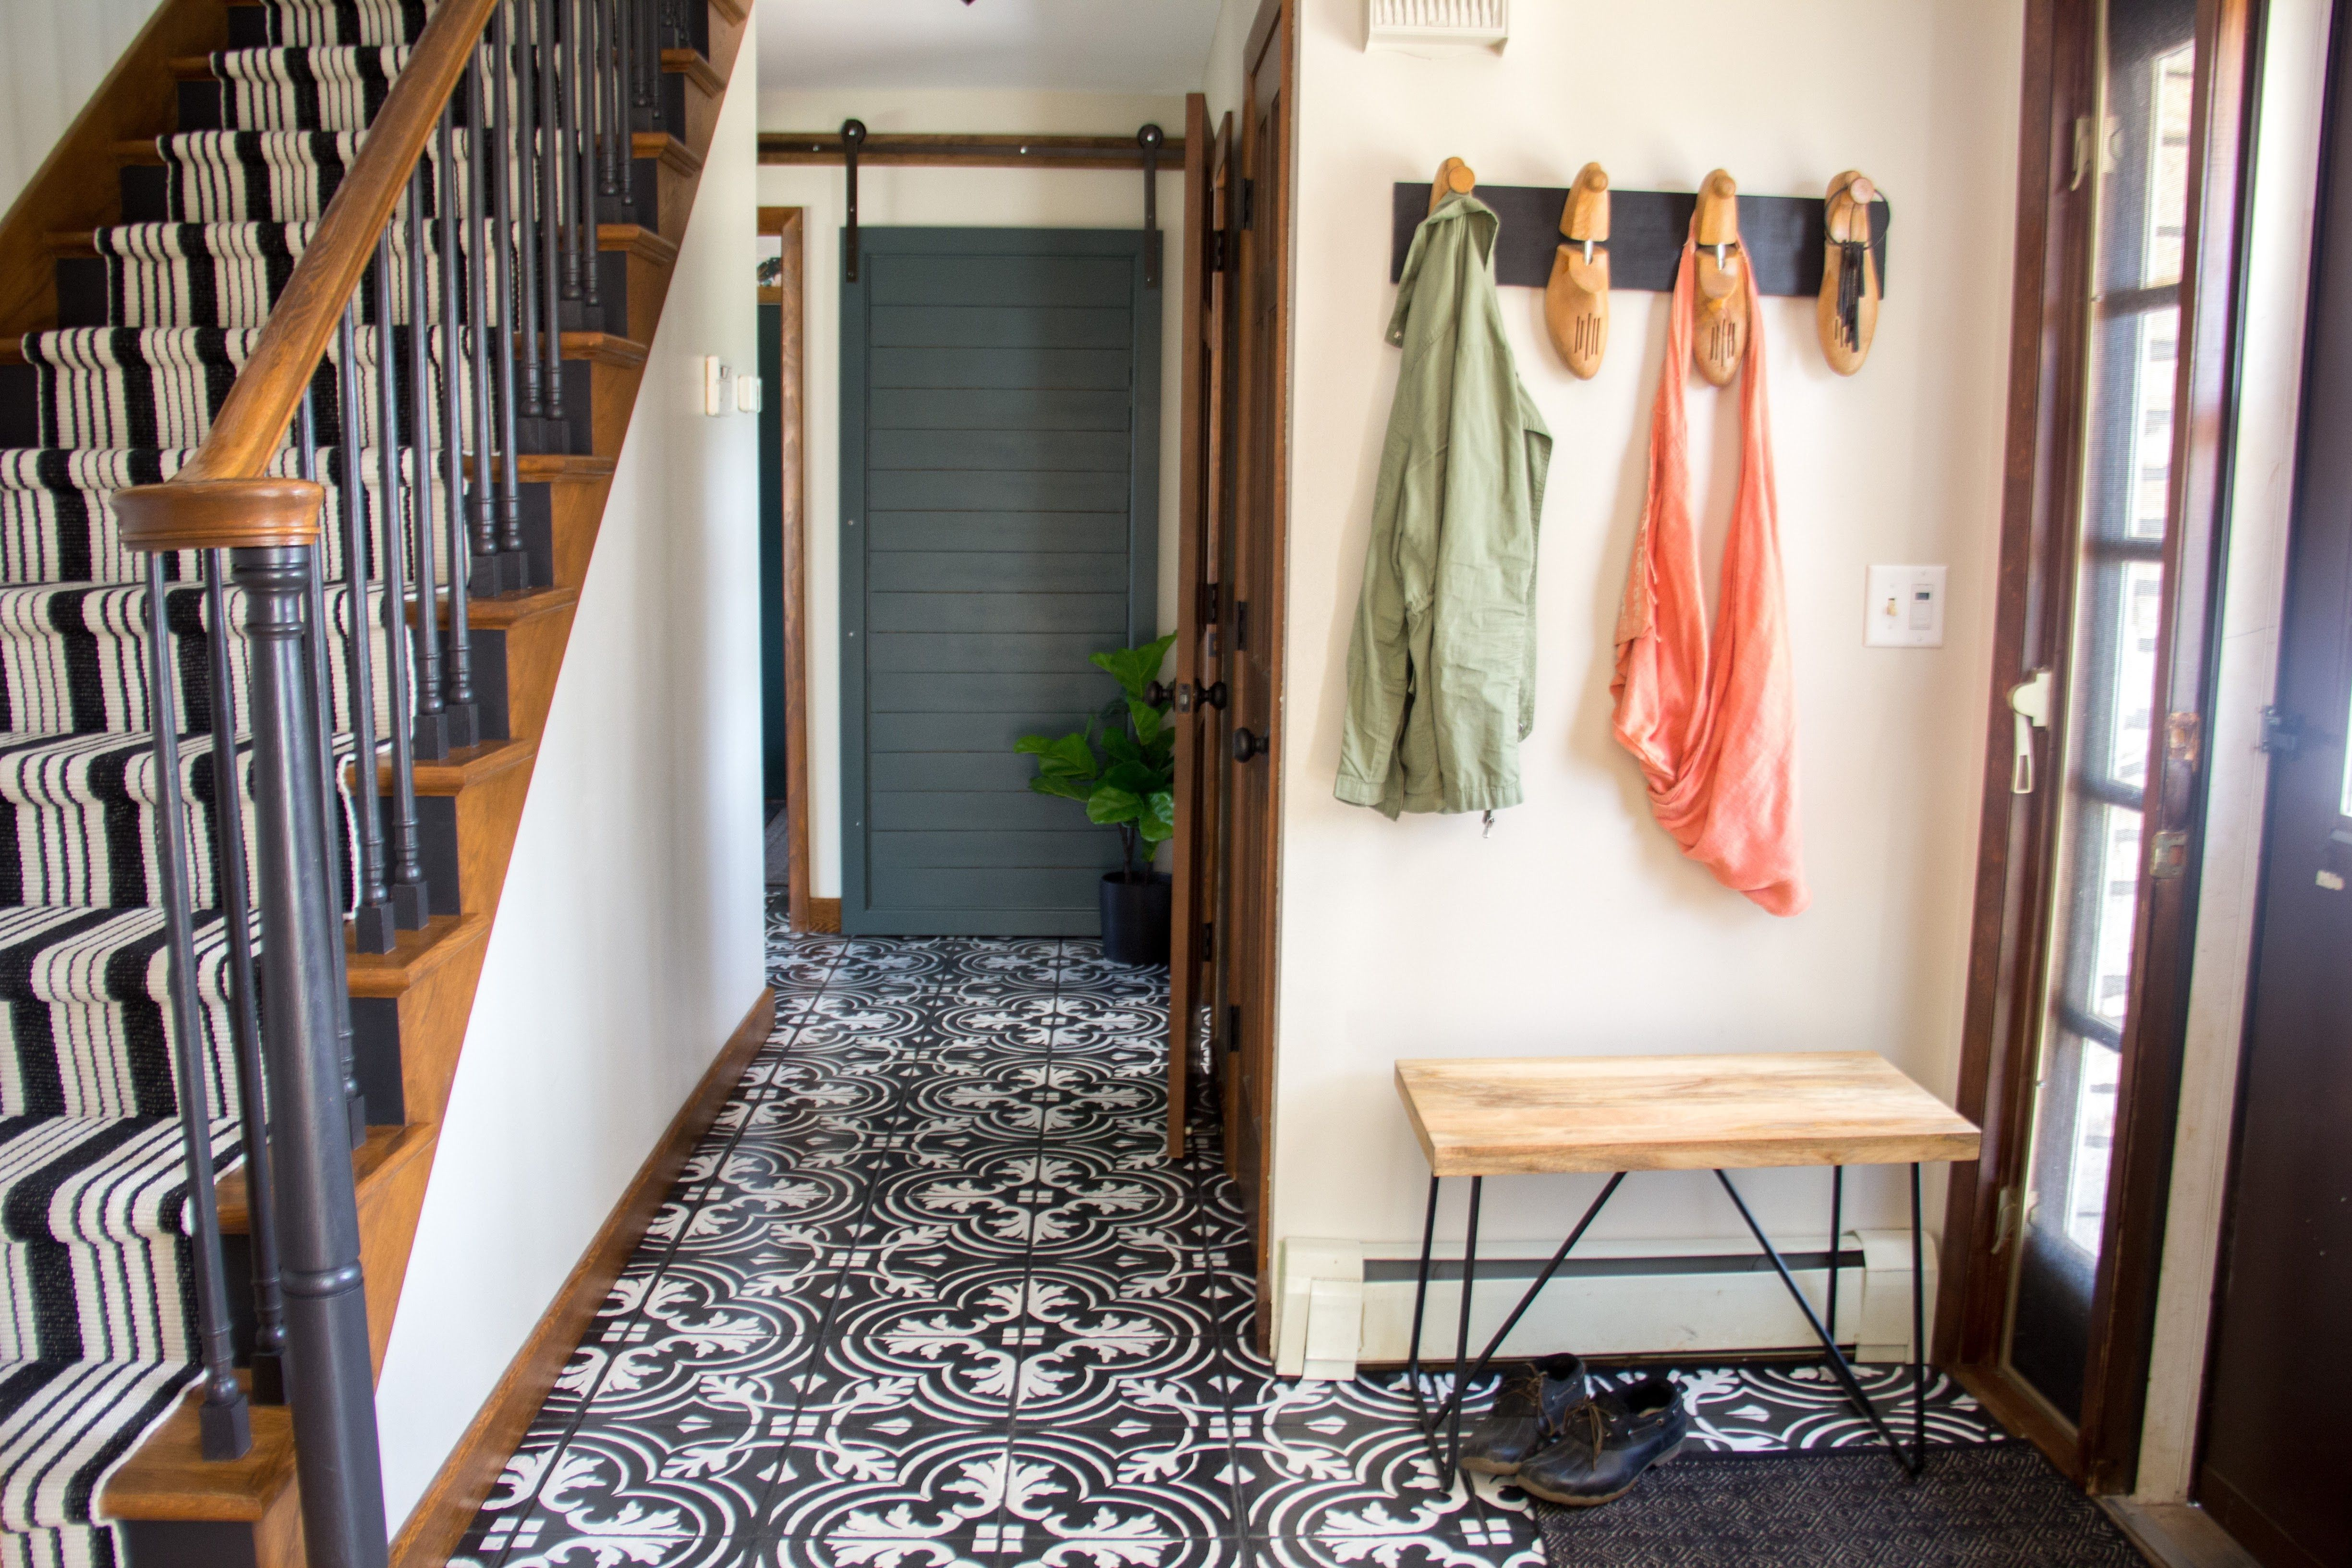 This Woman Transformed Her Tile Floors With Stencils, and the Results are Amazing